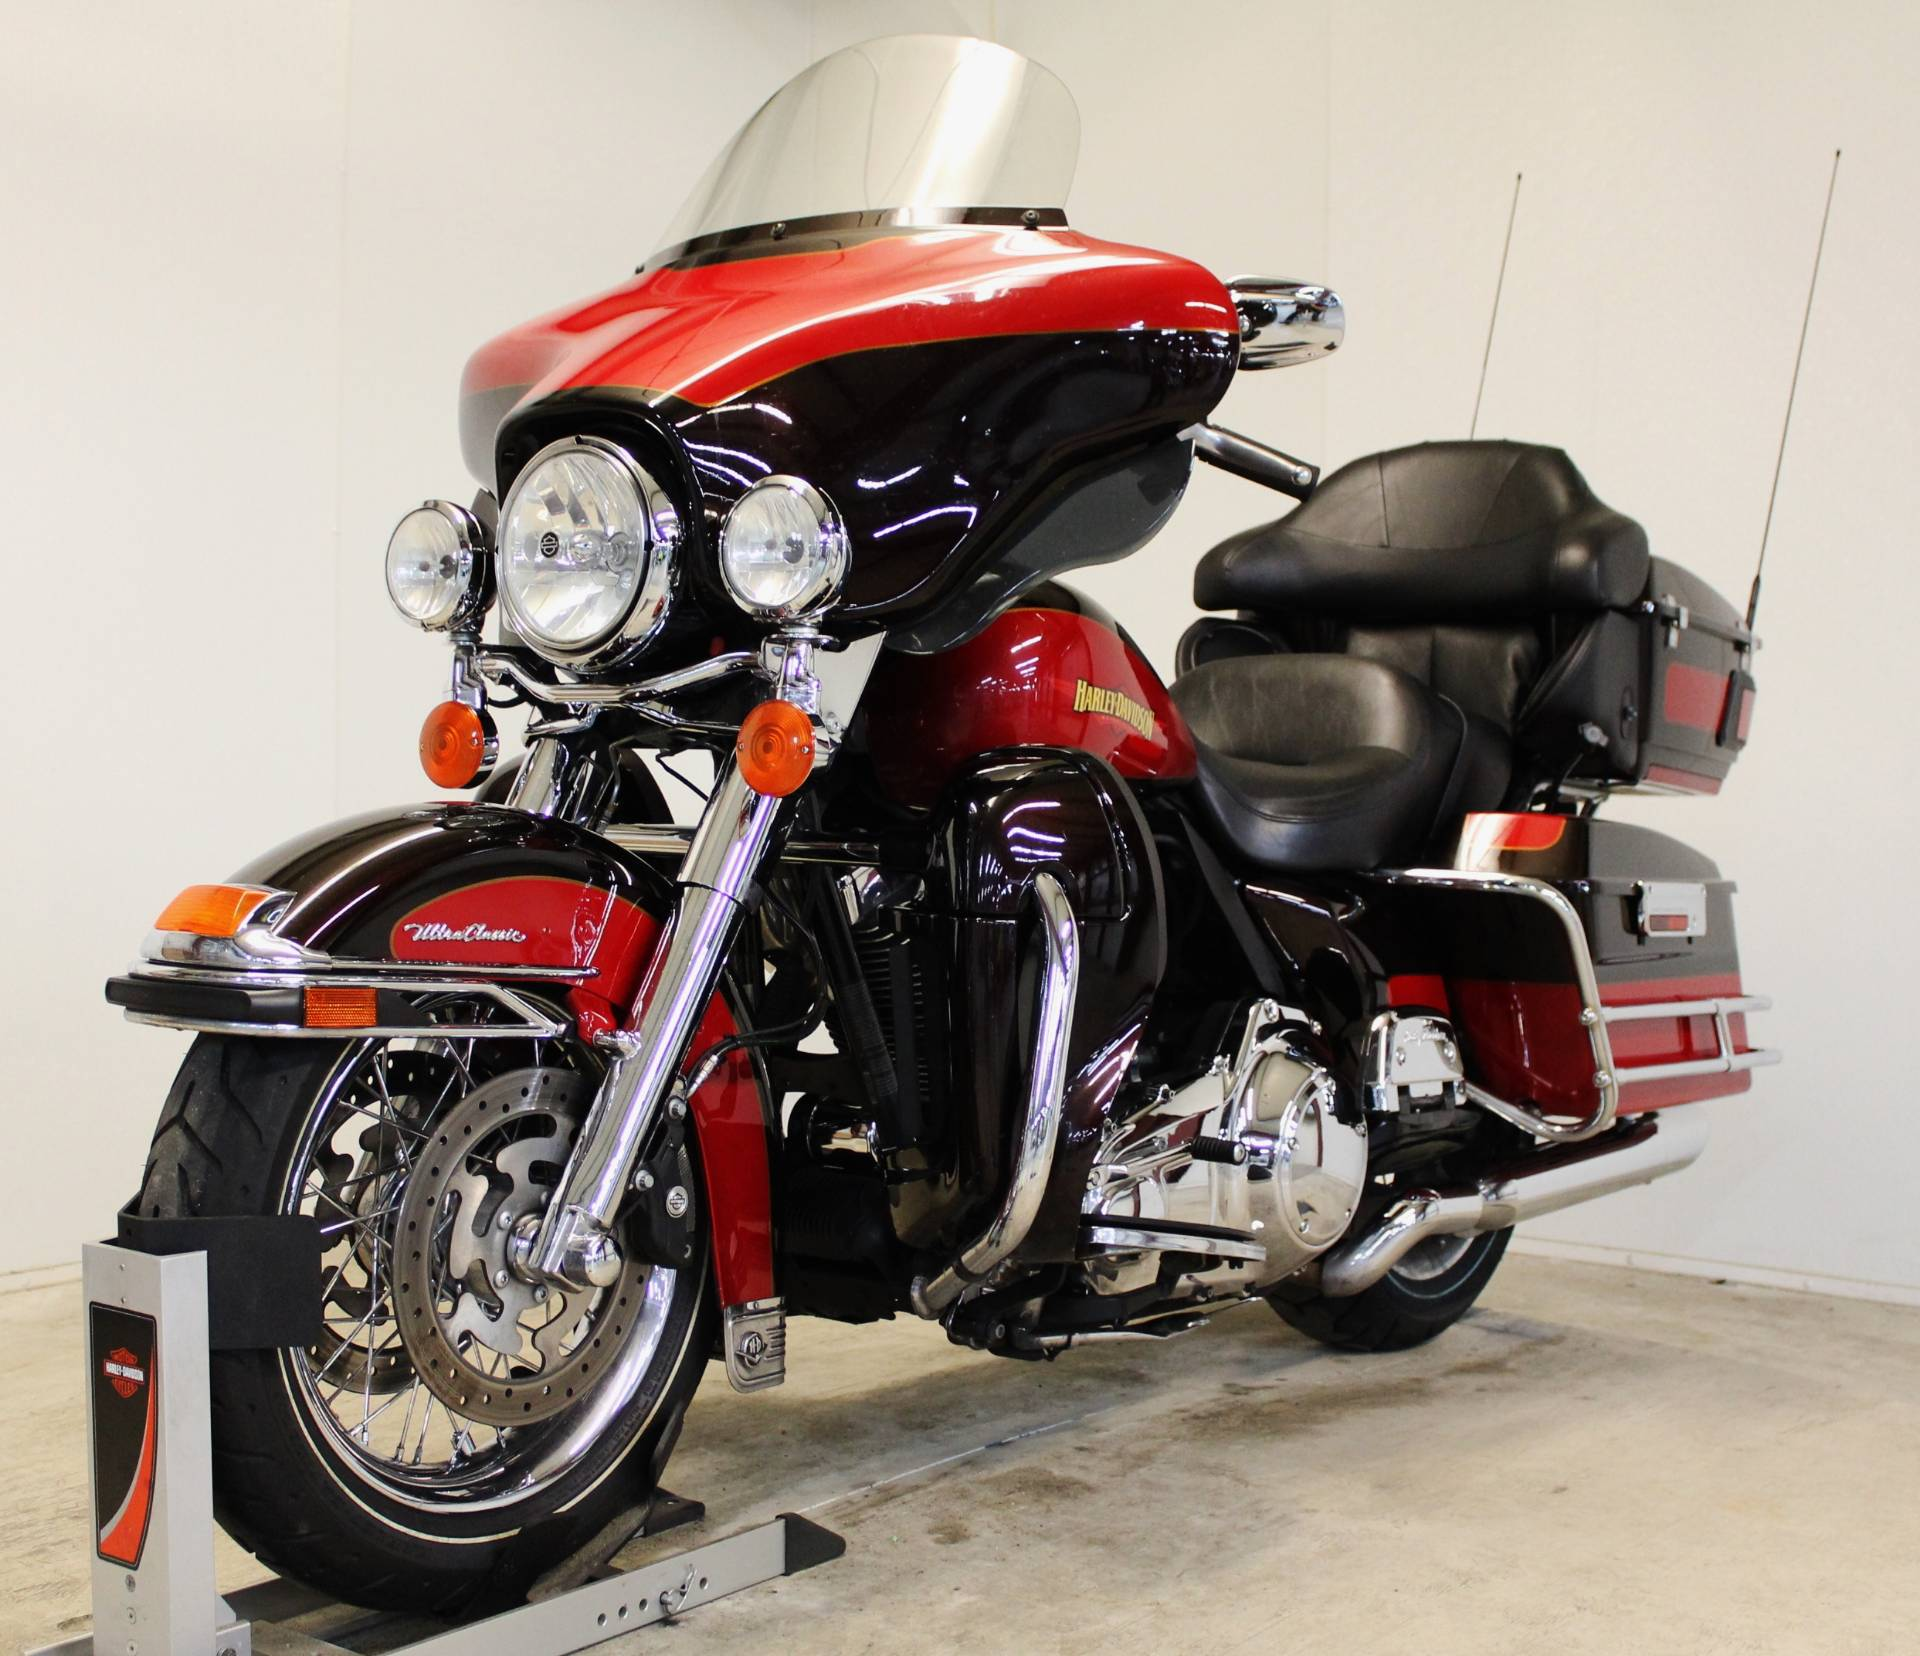 2010 harley davidson ultra classic electra glide for sale pittsfield ma 81798. Black Bedroom Furniture Sets. Home Design Ideas